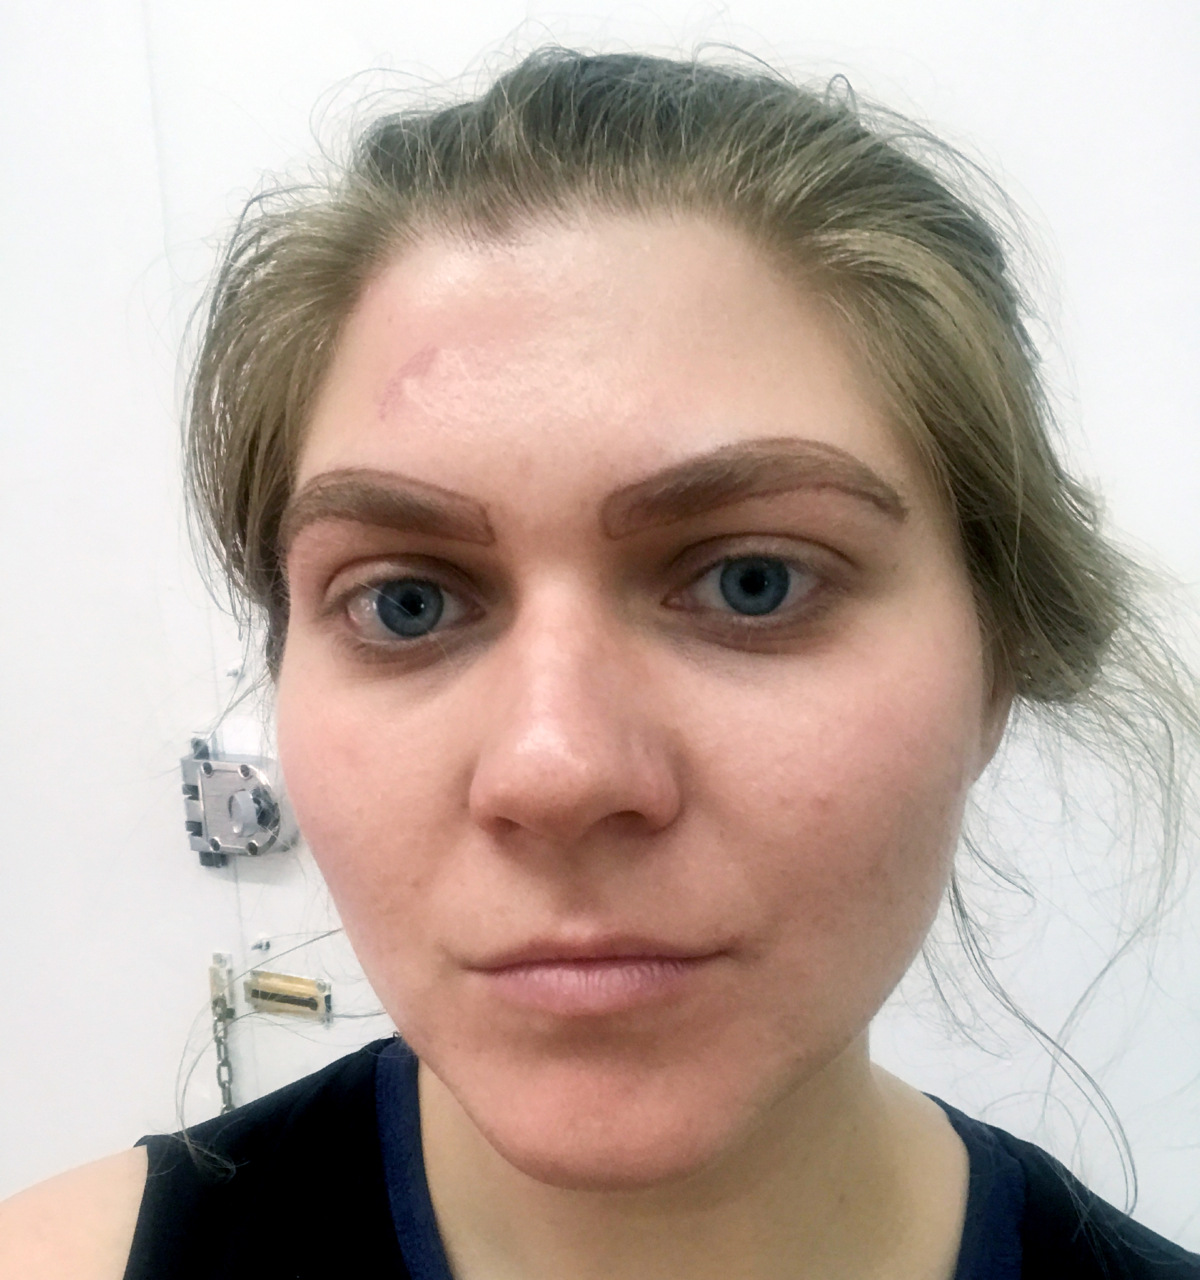 Microblading-Microbladed-Eyebrows-Face-Beauty-Trend-Cosmetic-Man-Repeller-eyebrow box